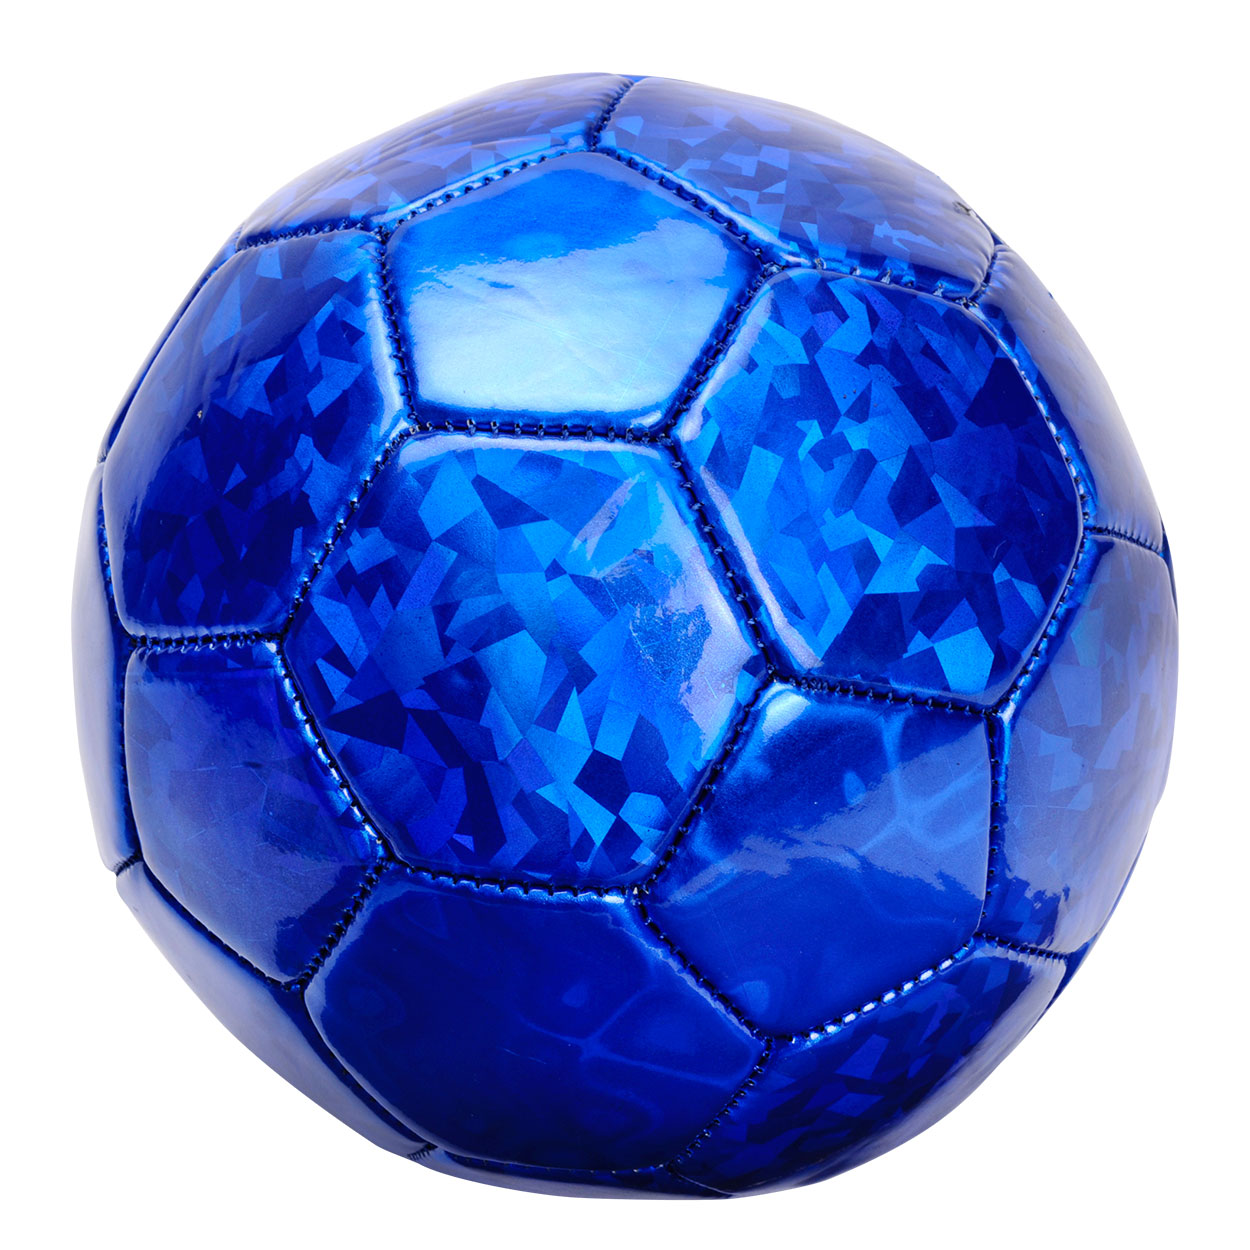 Mini Voetbal Metallic